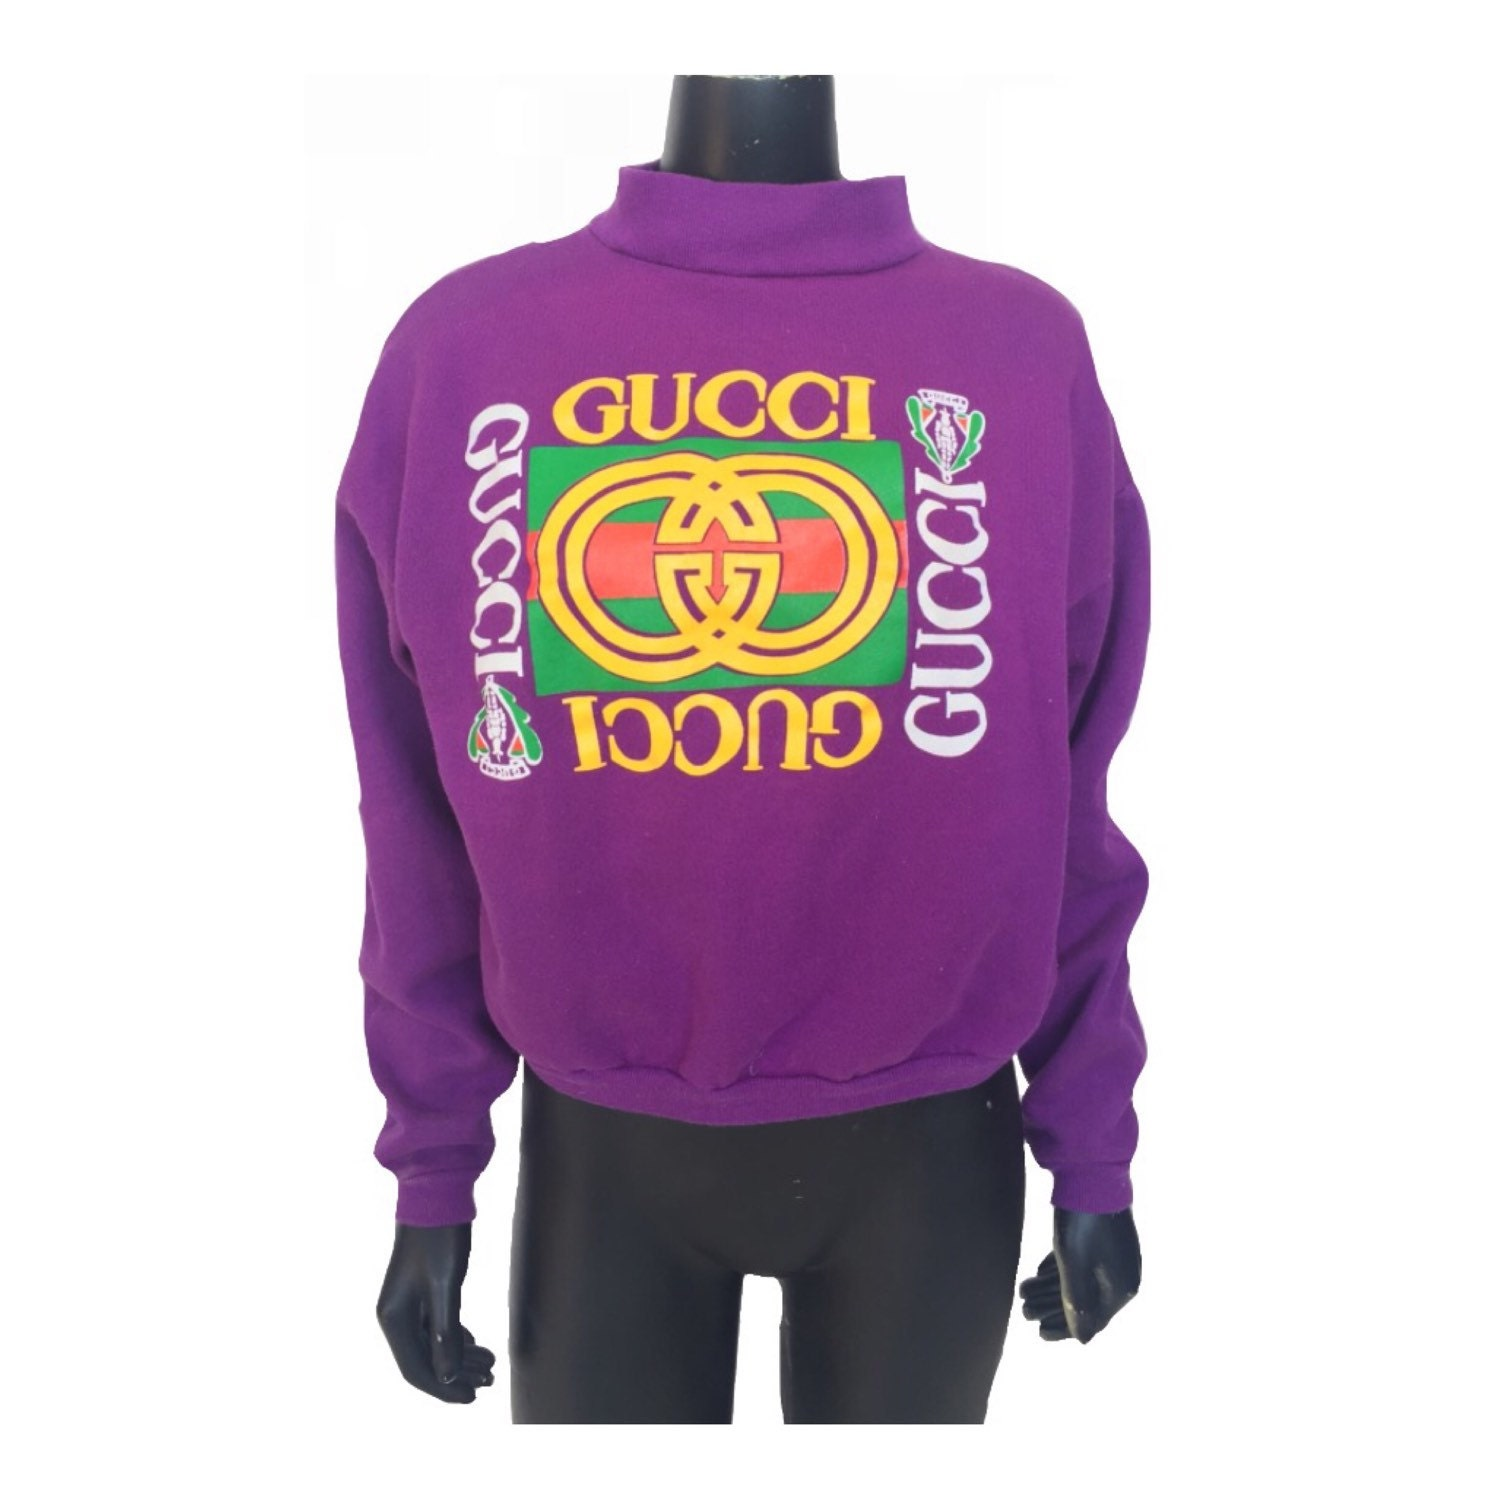 vintage 80s rare gucci logo pullover sweatshirt by littleloco. Black Bedroom Furniture Sets. Home Design Ideas